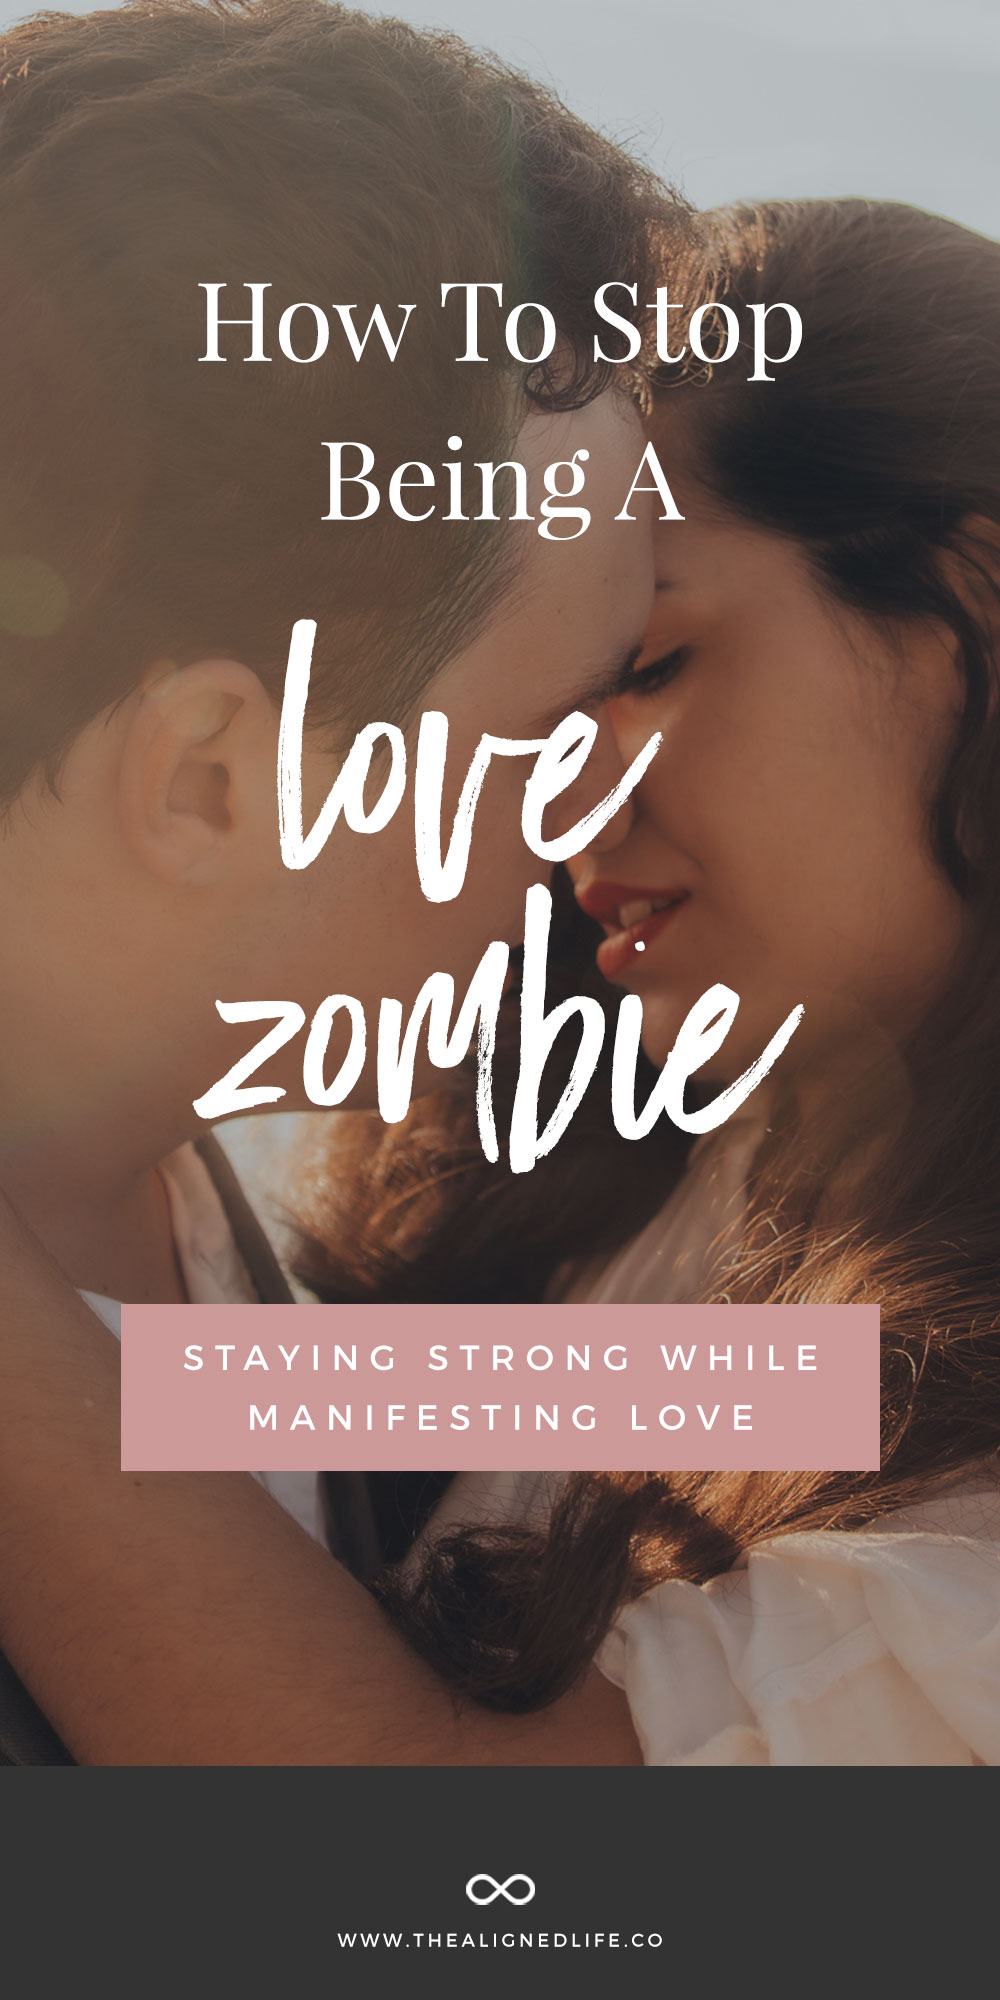 How To Stop Being A Love Zombie: Staying Strong While Manifesting Love